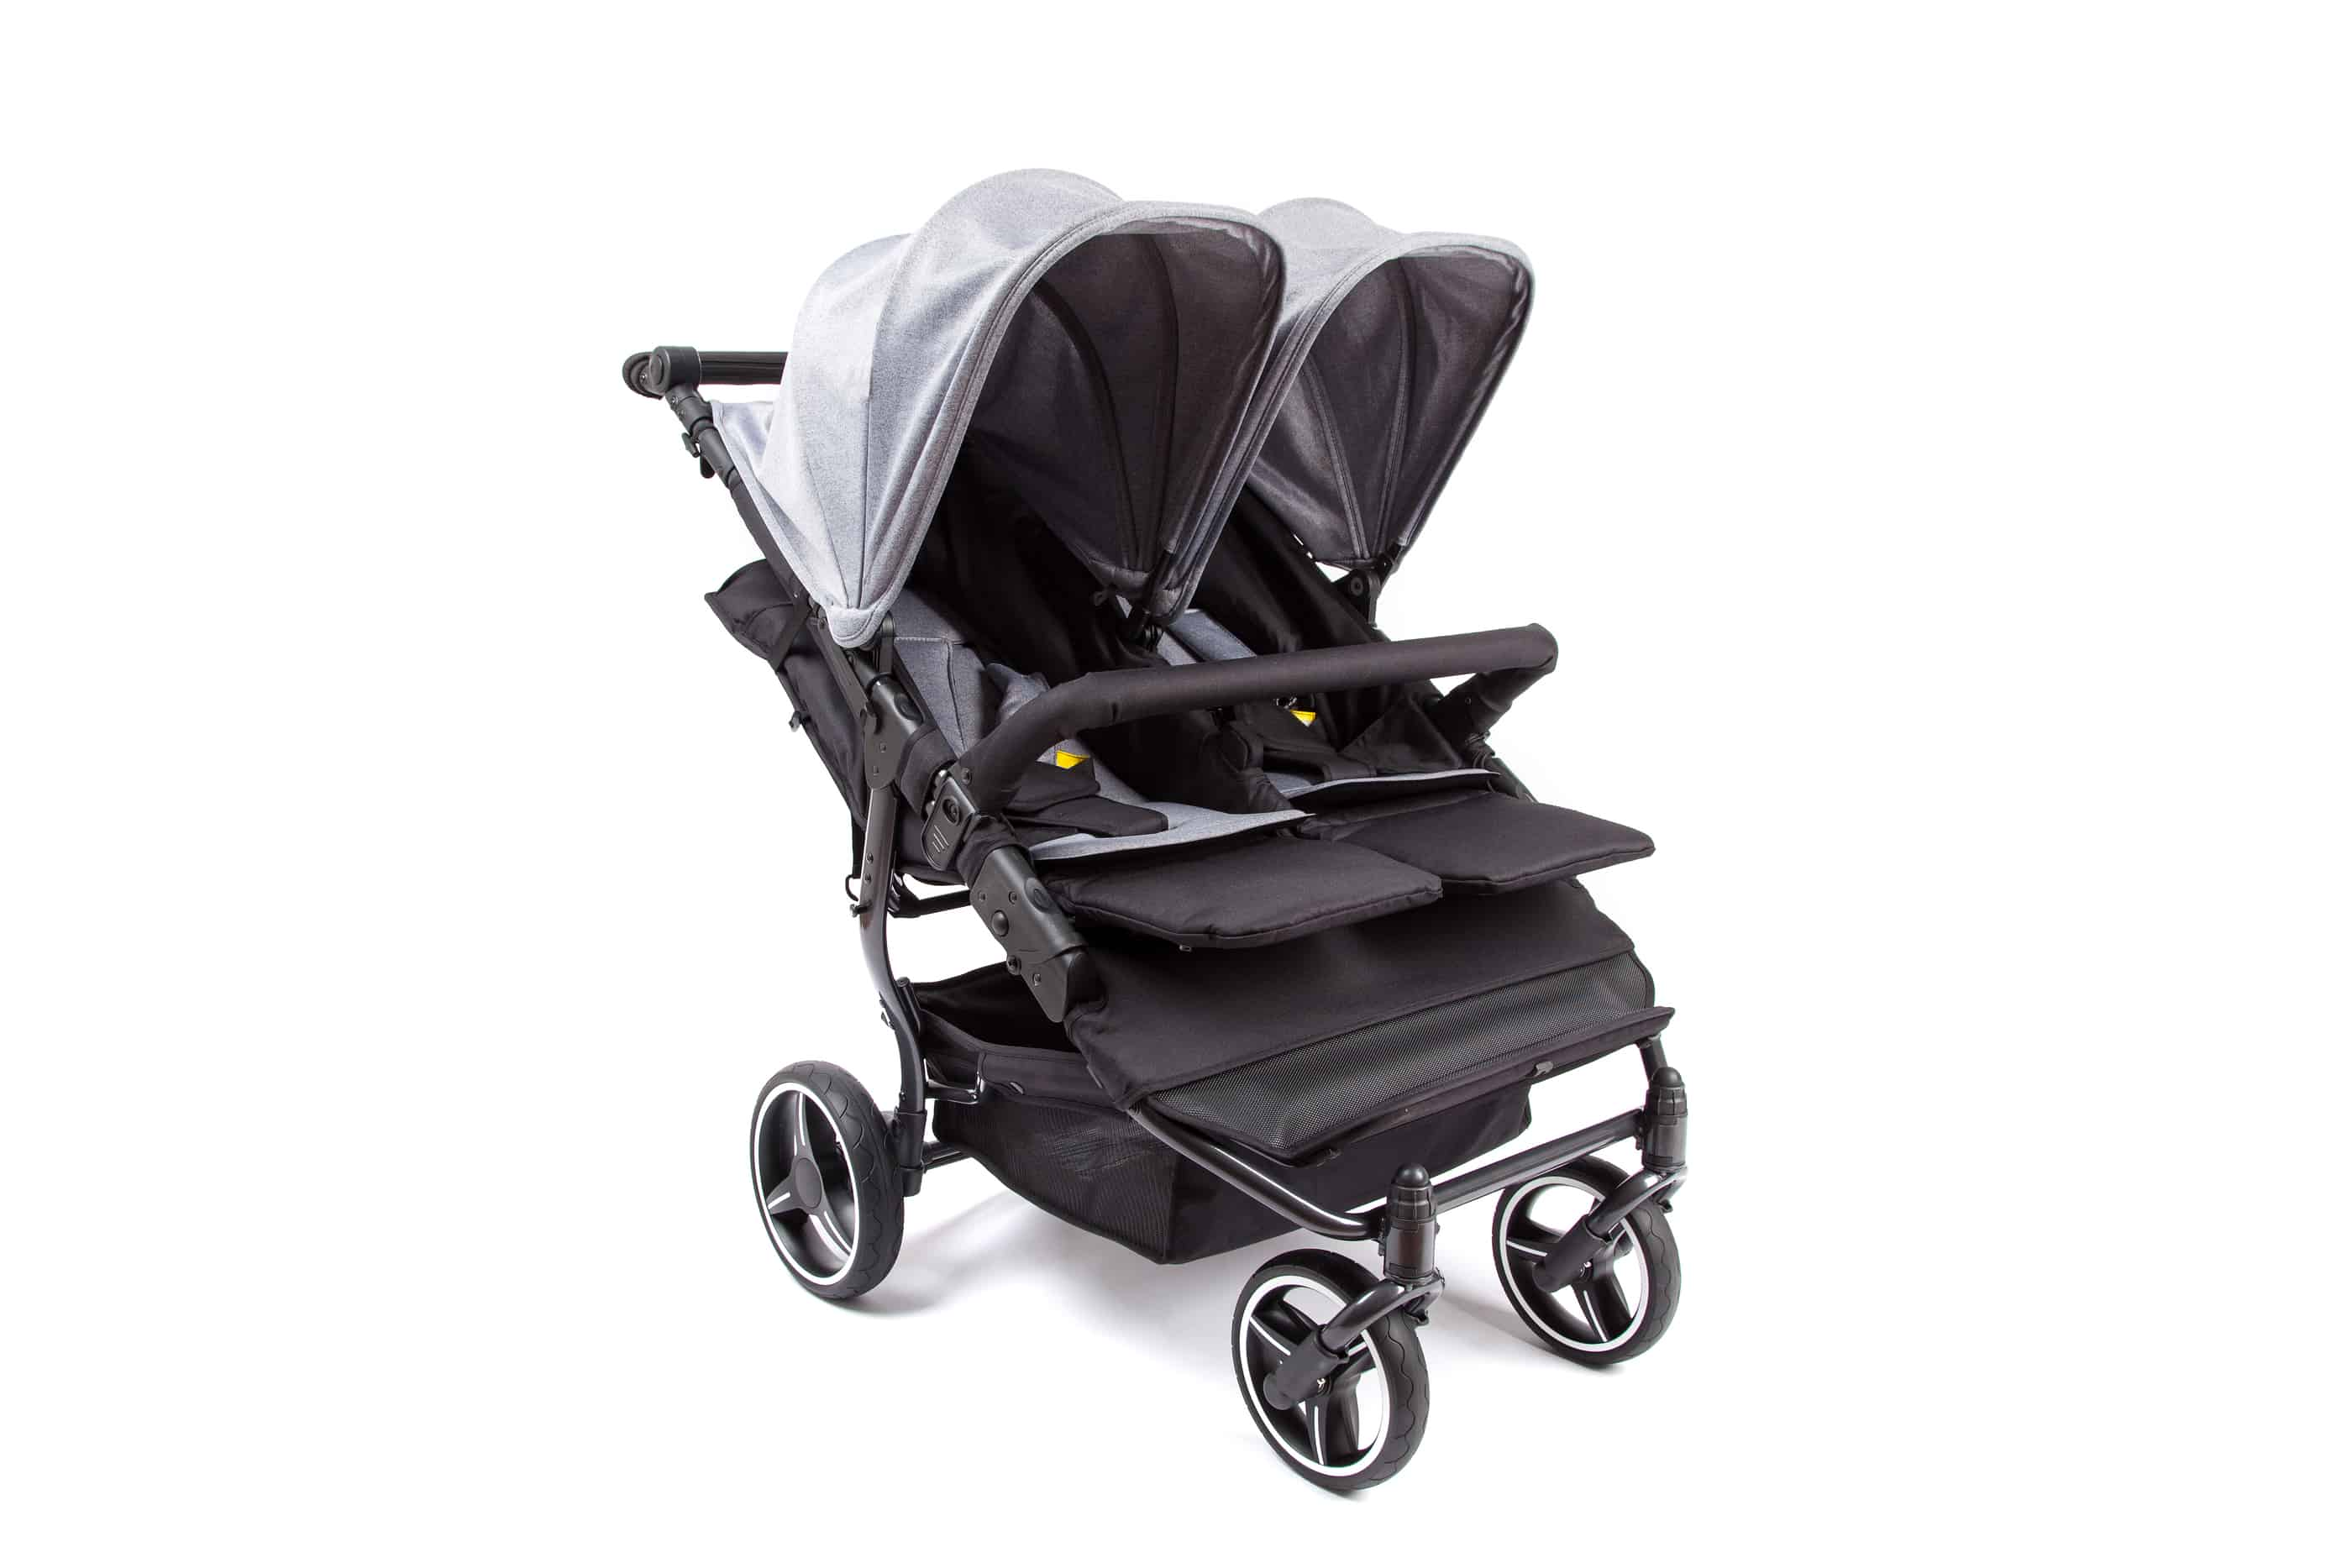 Double Pram Australia Reviews The Ultimate Guide To Finding The Best Double Pram Australia